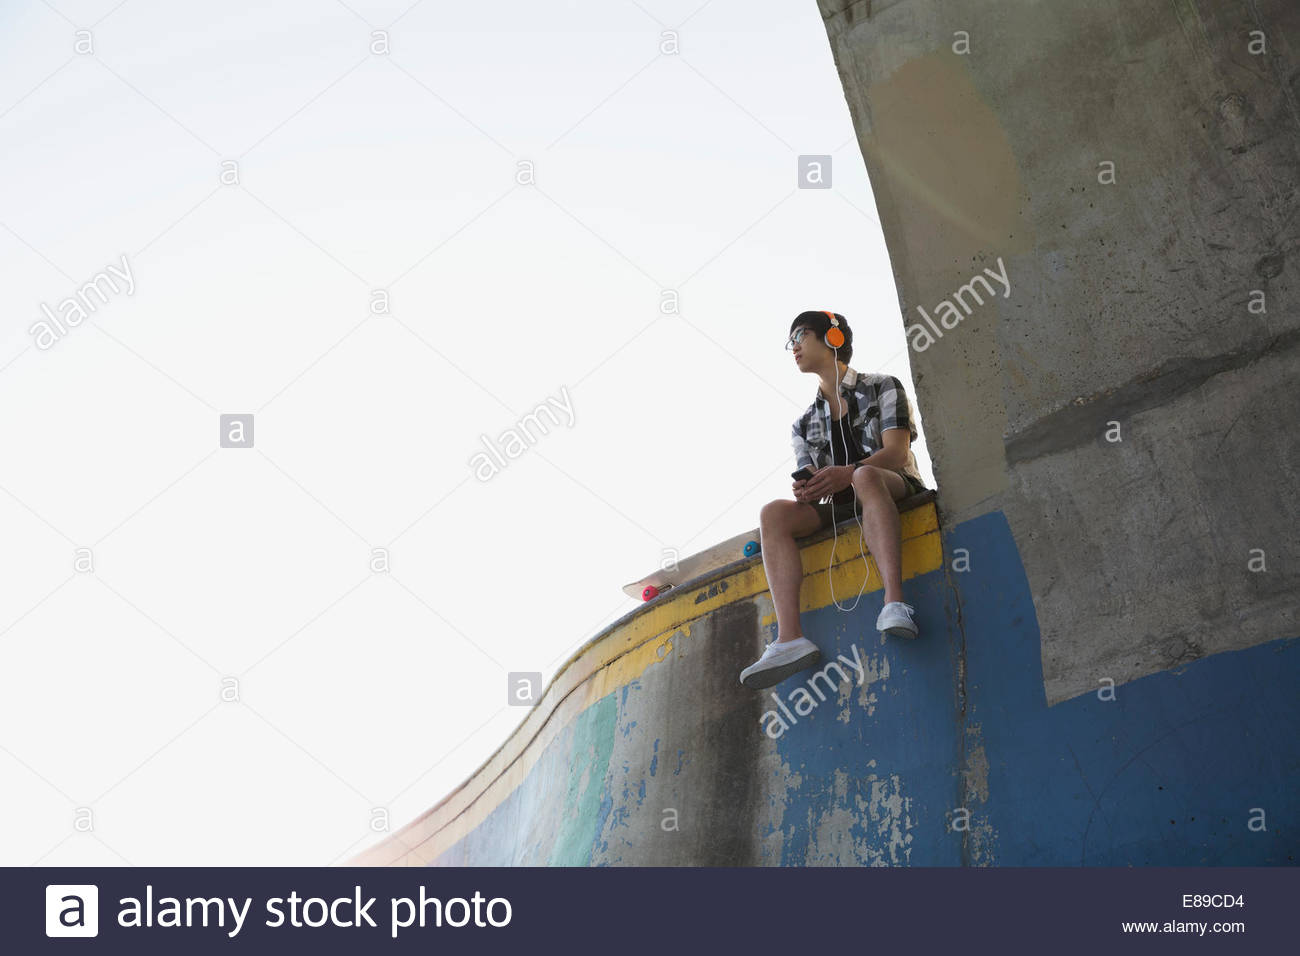 Teenager auf Rampe am Skateboard-park Stockbild